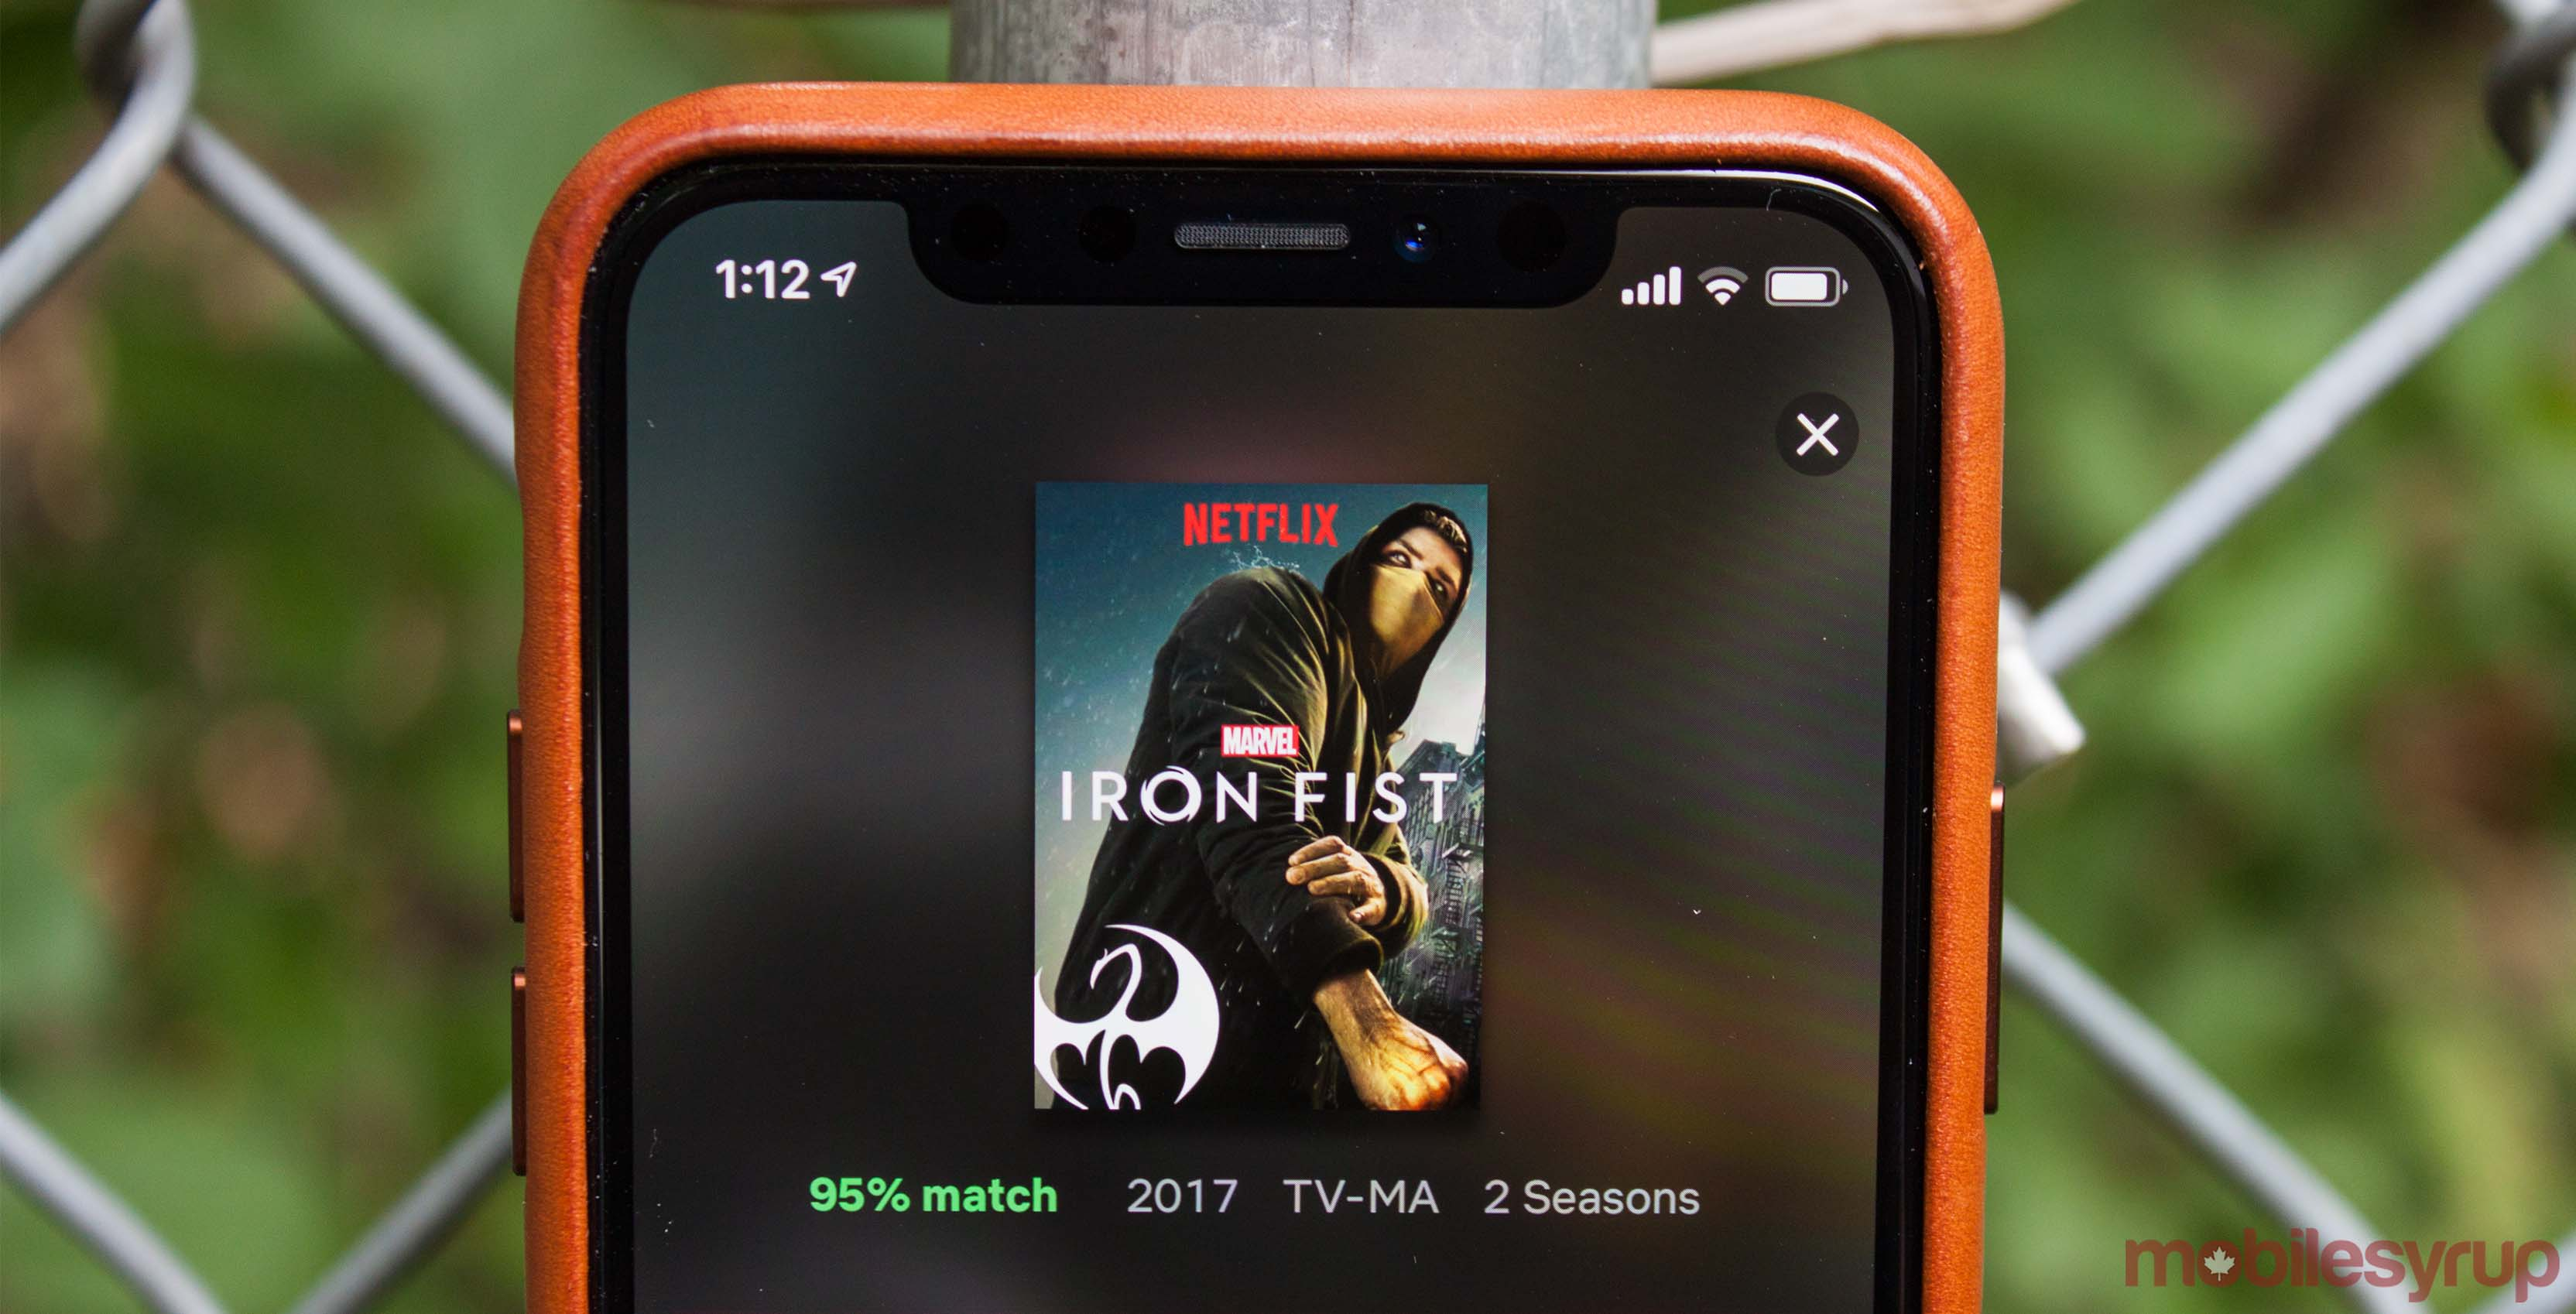 Iron Fist on Netflix